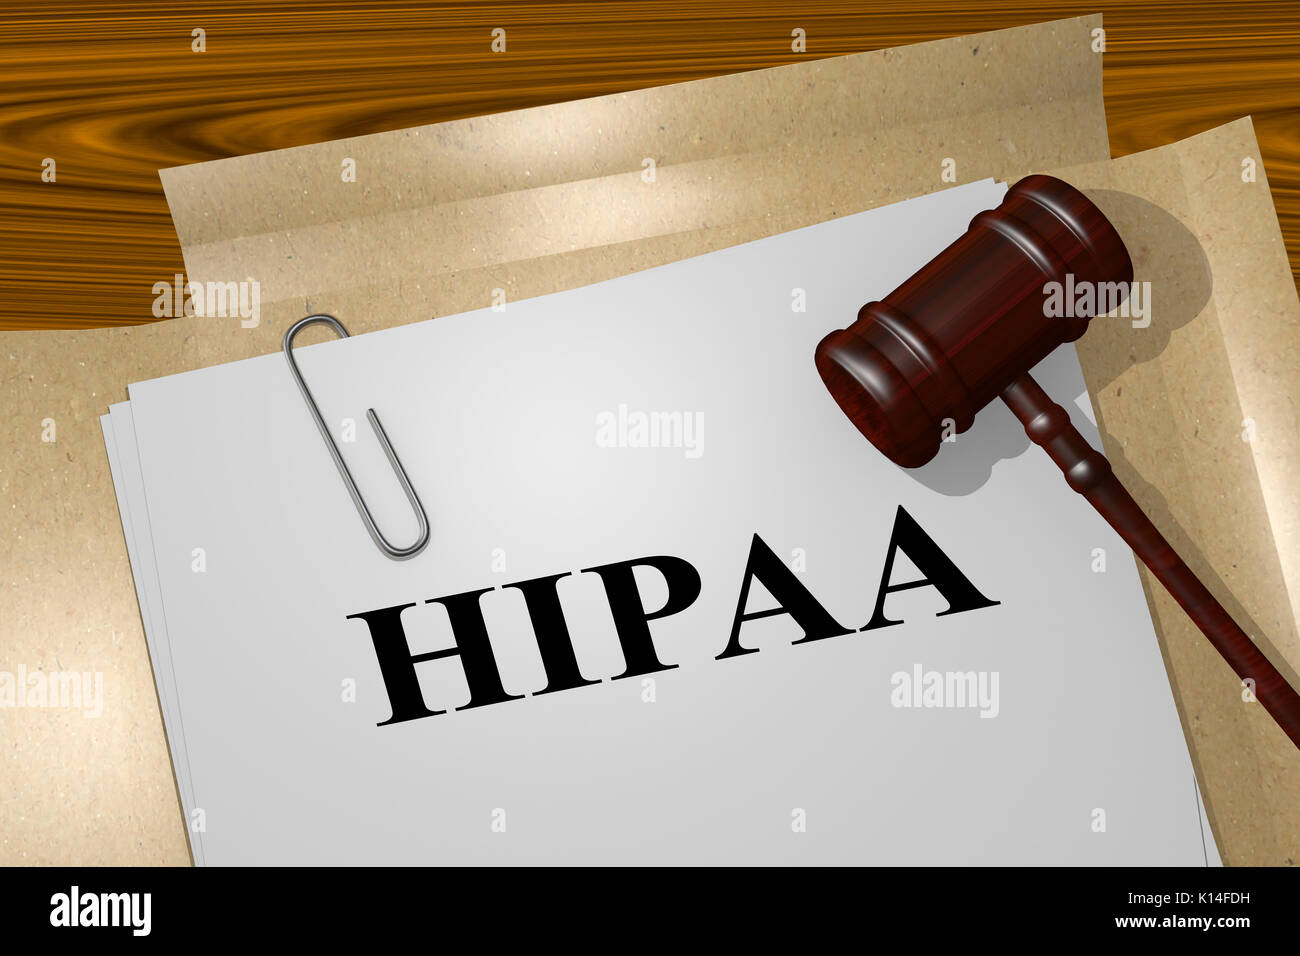 3D illustration of 'HIPAA' title on legal document (Health Insurance Portability and Accountability Act of 1996) - Stock Image